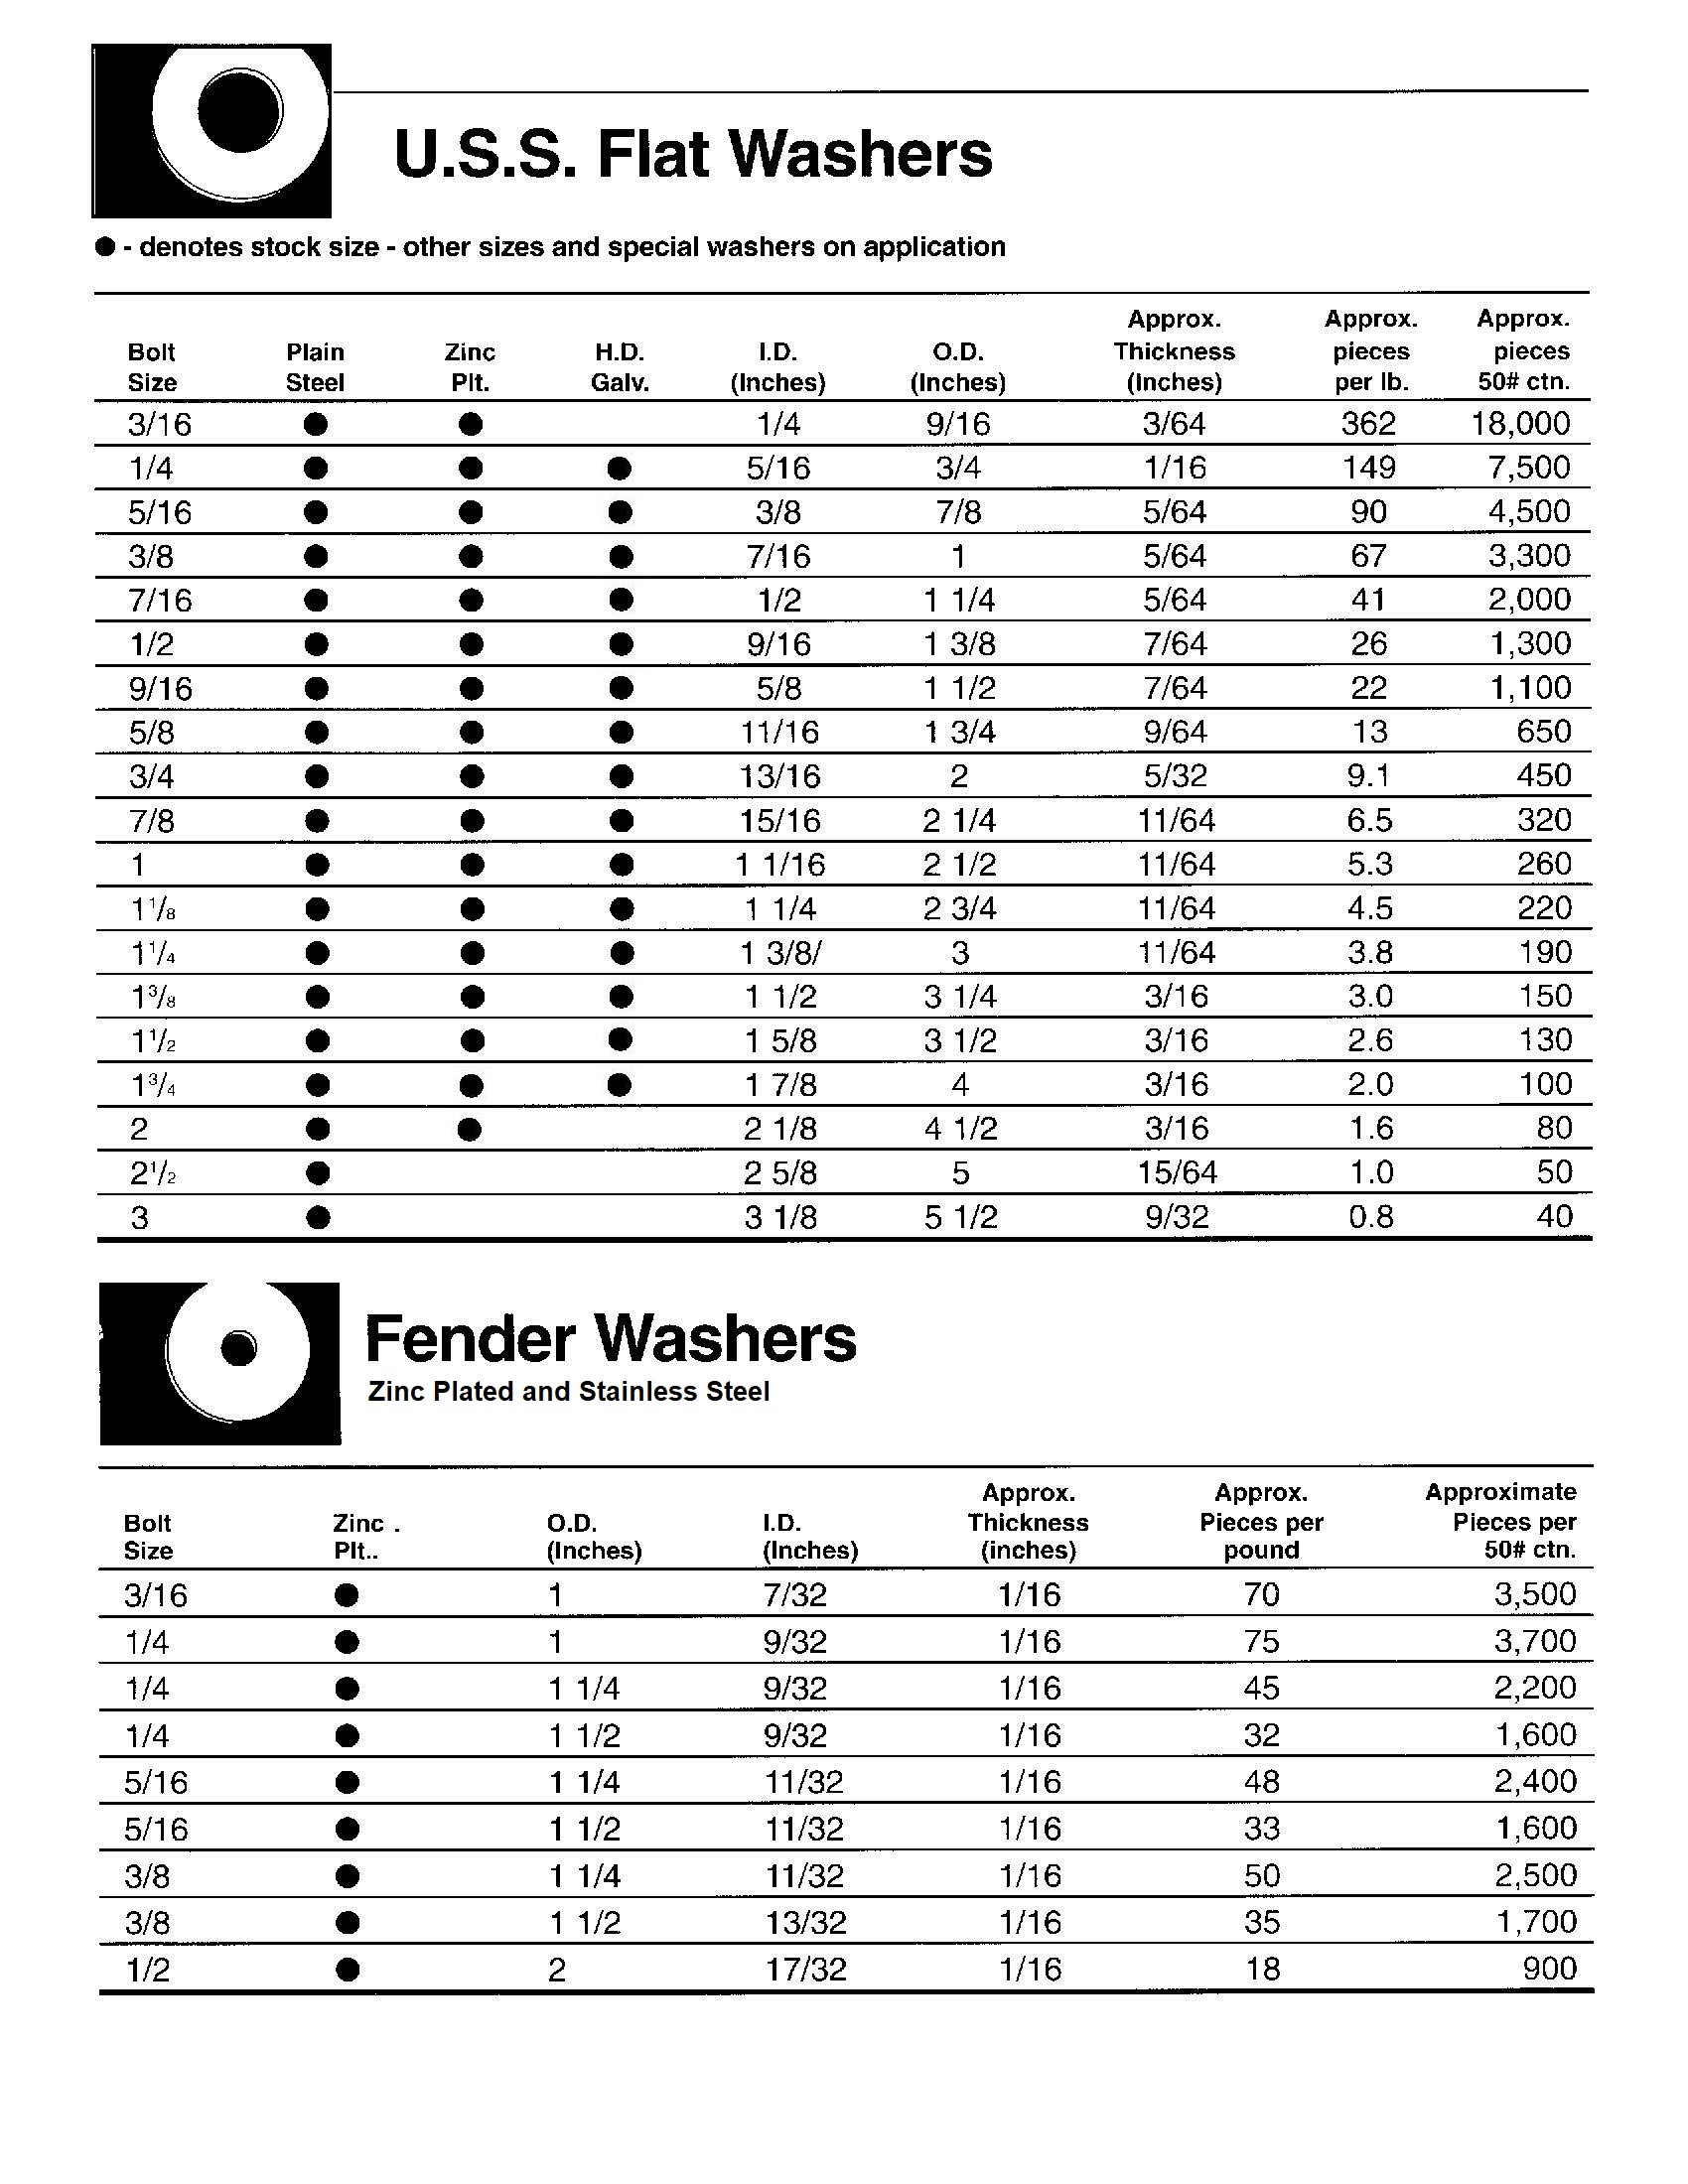 USS AND FENDER WASHER DIMENSIONS